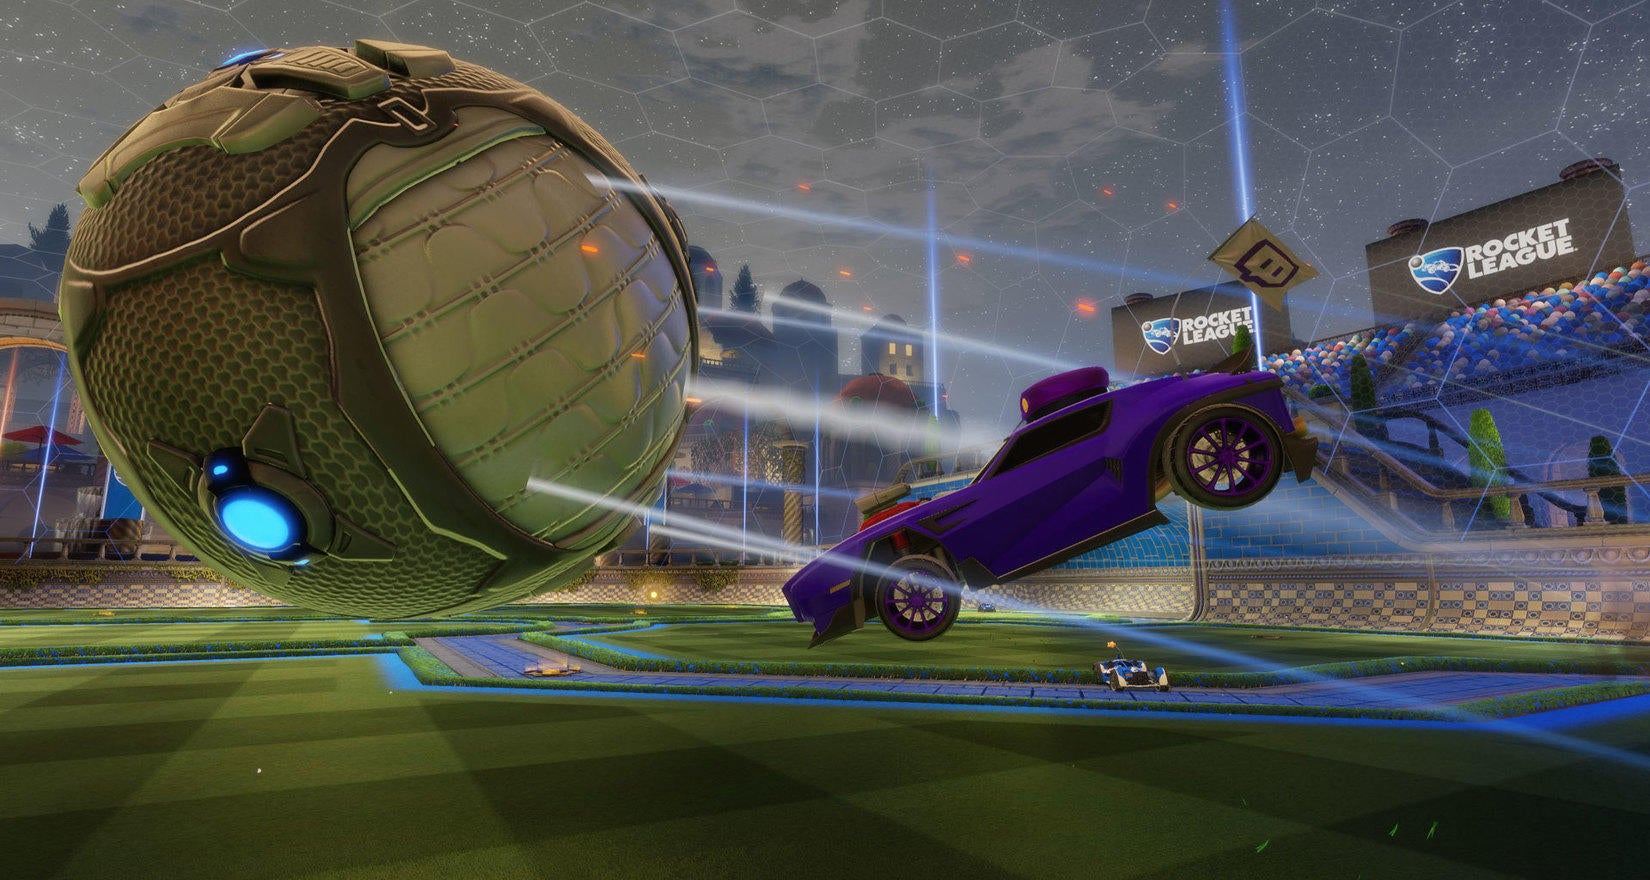 Rocket League at TwitchCon 2016 Image